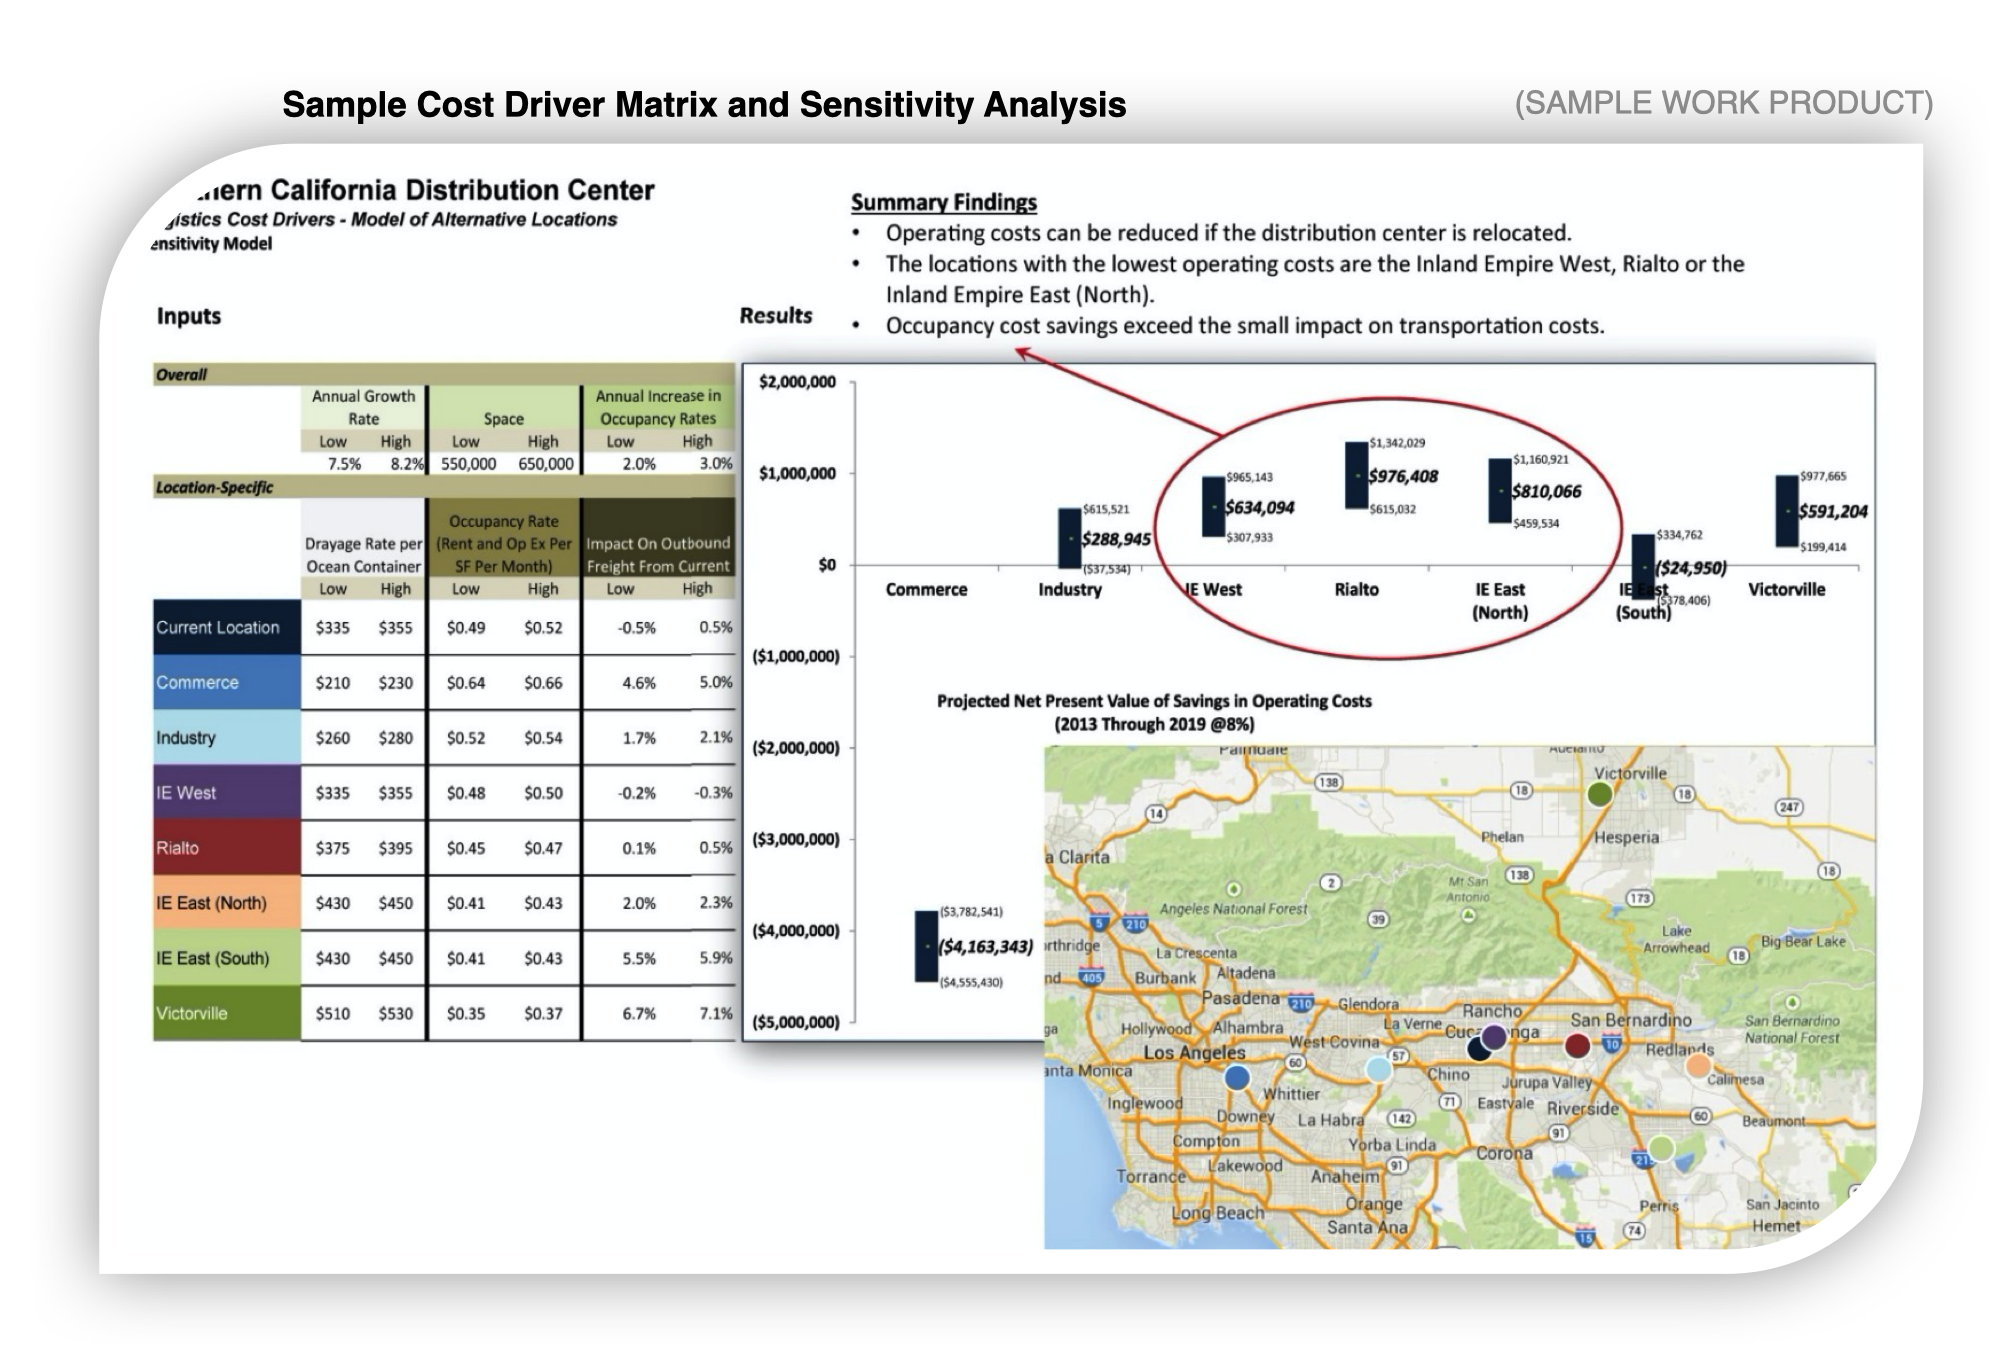 A sample cost driver matrix and sensitivity analysis